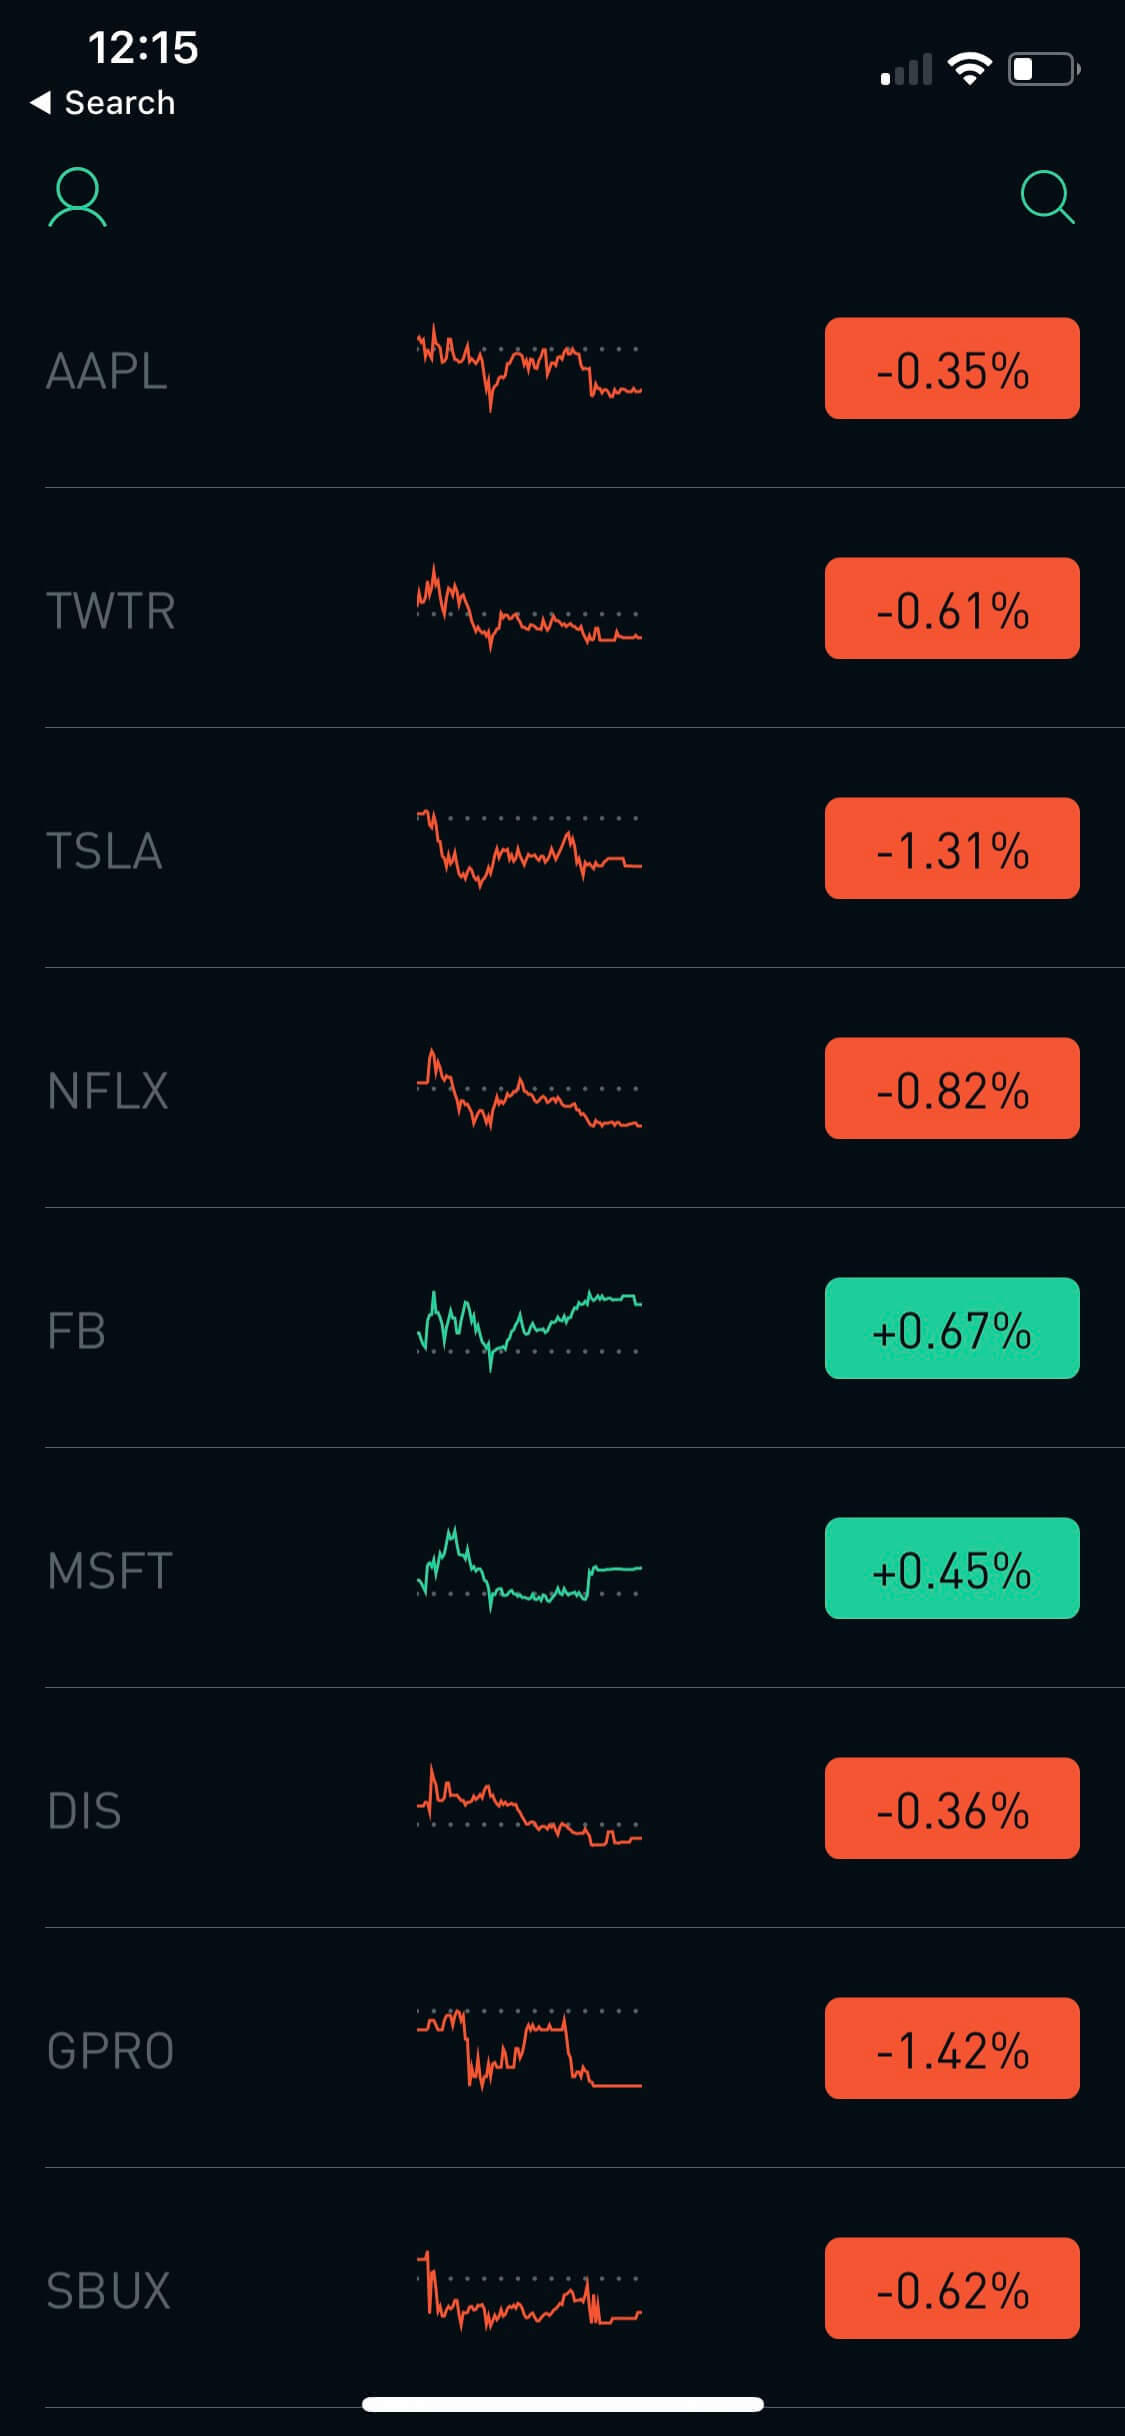 What Do 71% Buy 31% Hold On Robinhood